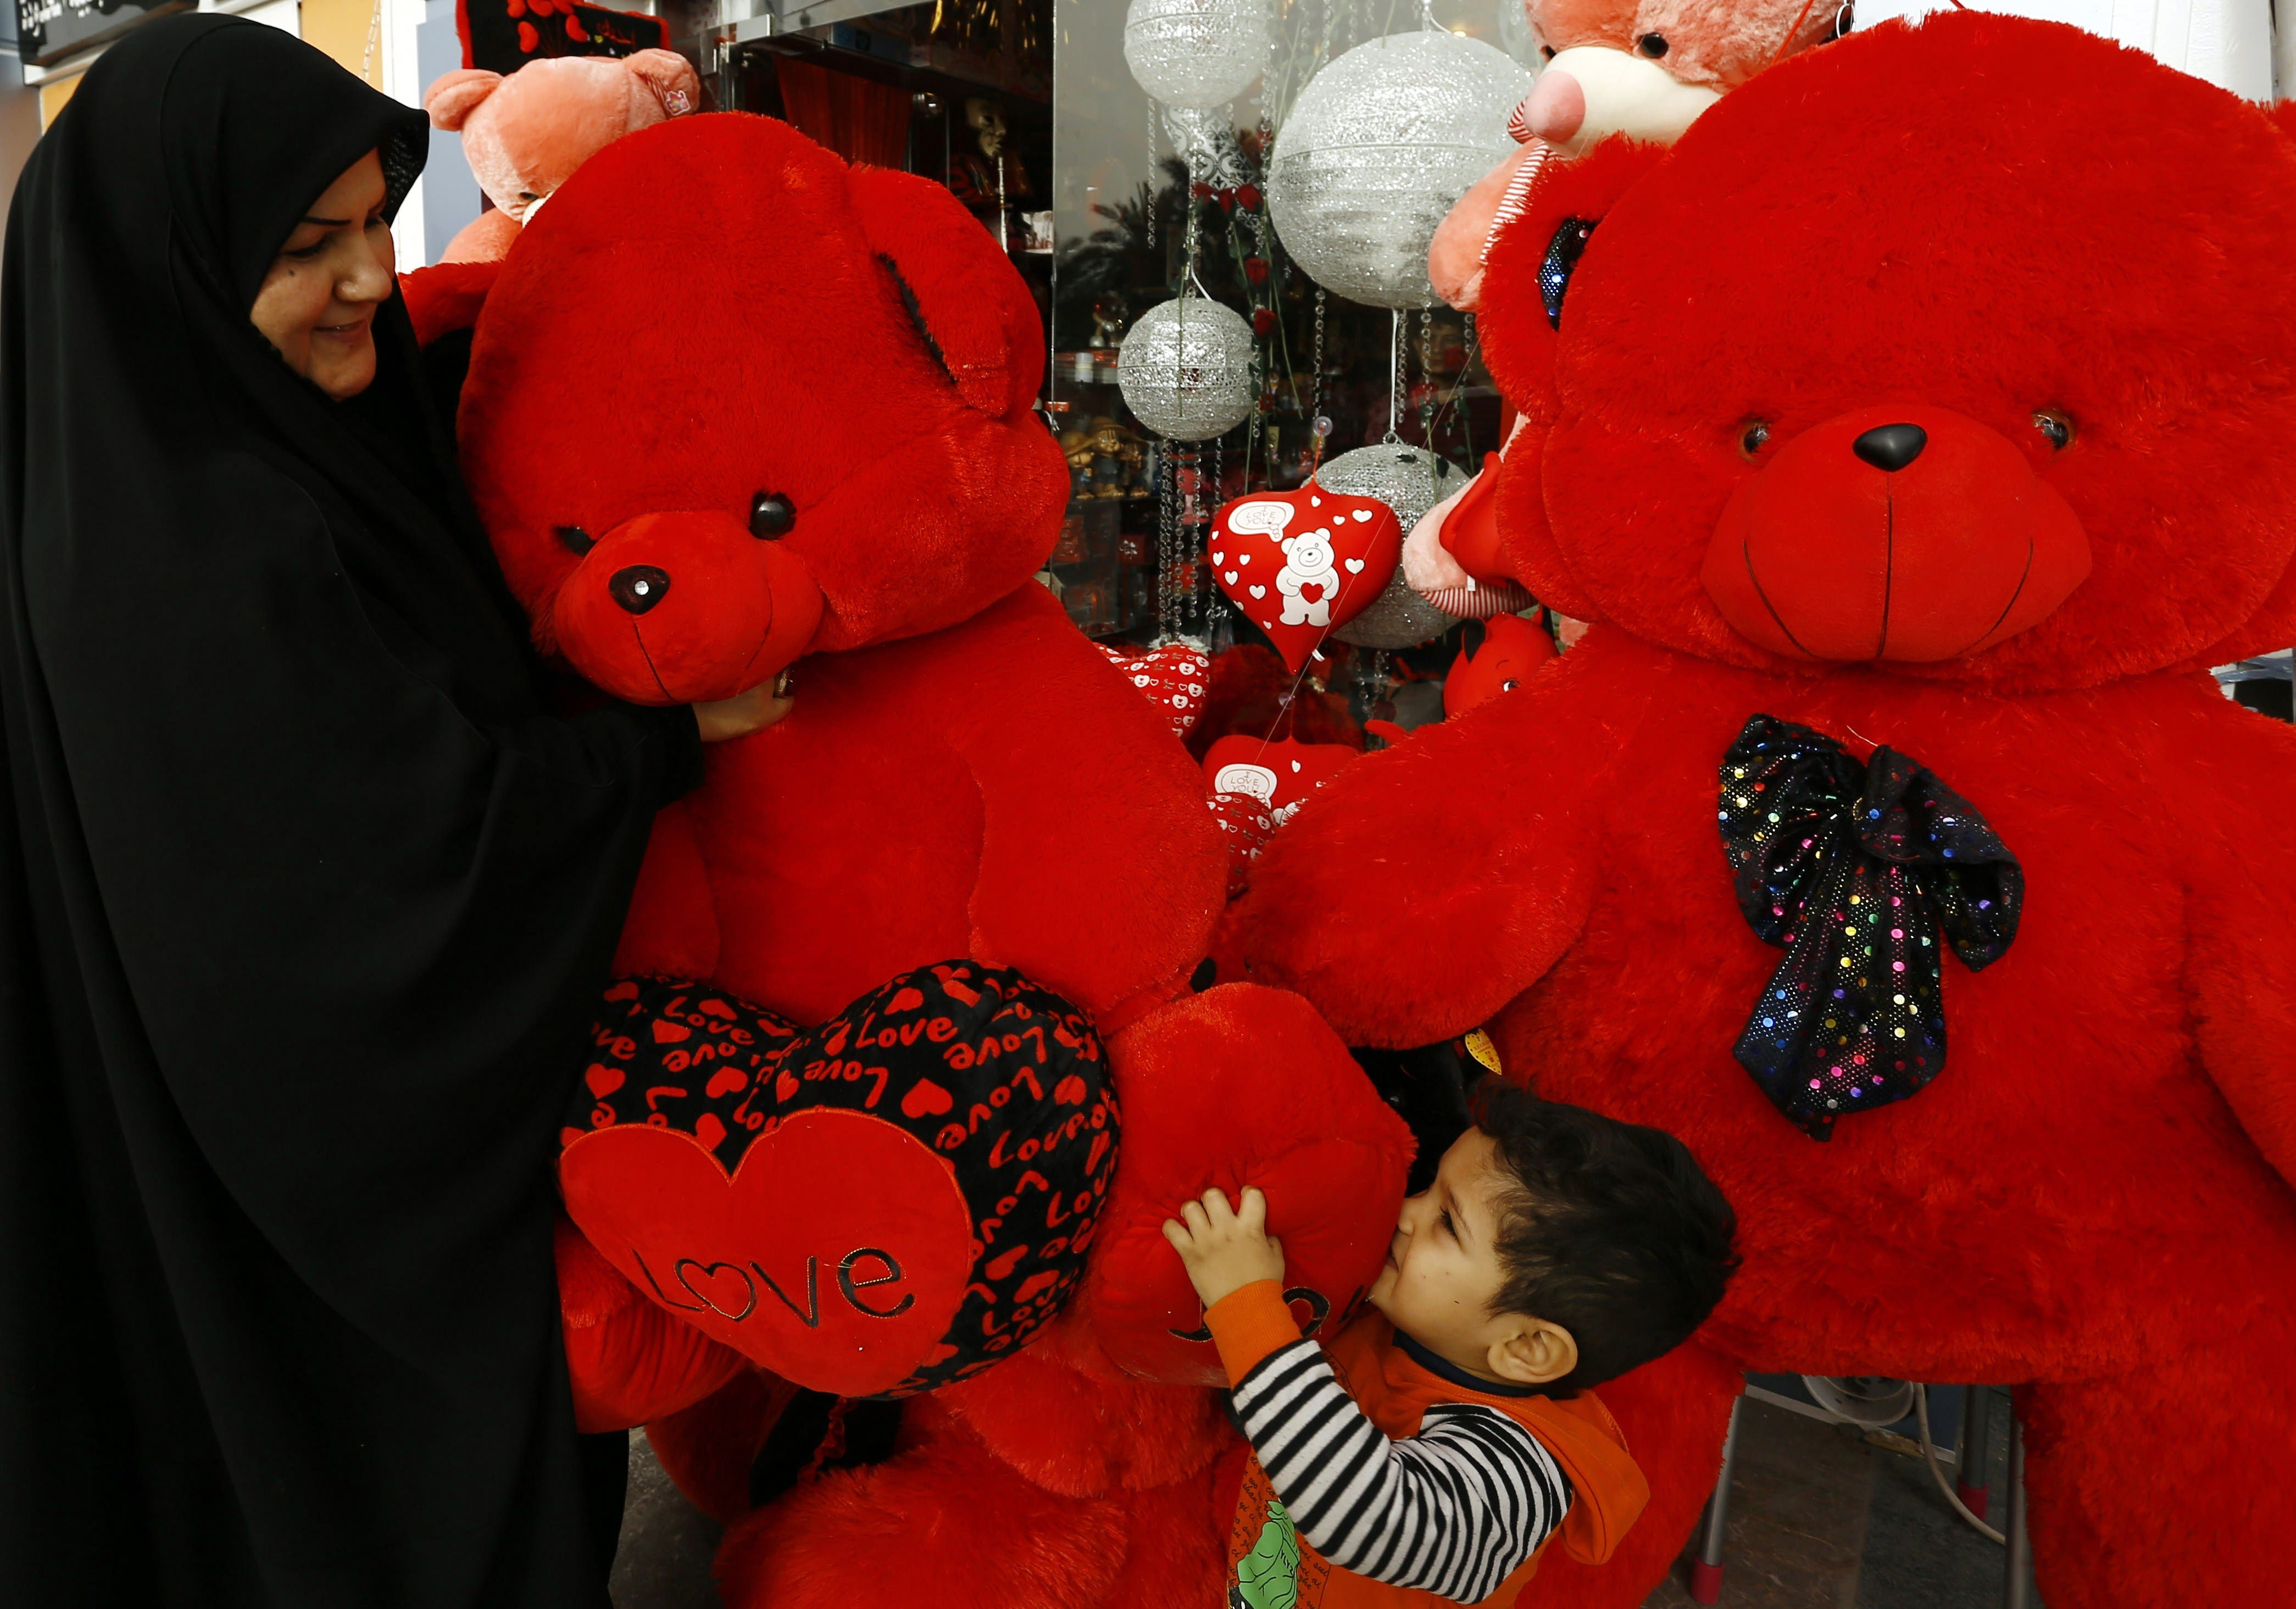 An Iraqi woman and child hold a teddy bear as they shop for gifts ahead of Valentine's Day in the central Iraqi city of Najaf on February 12, 2015. AFP PHOTO